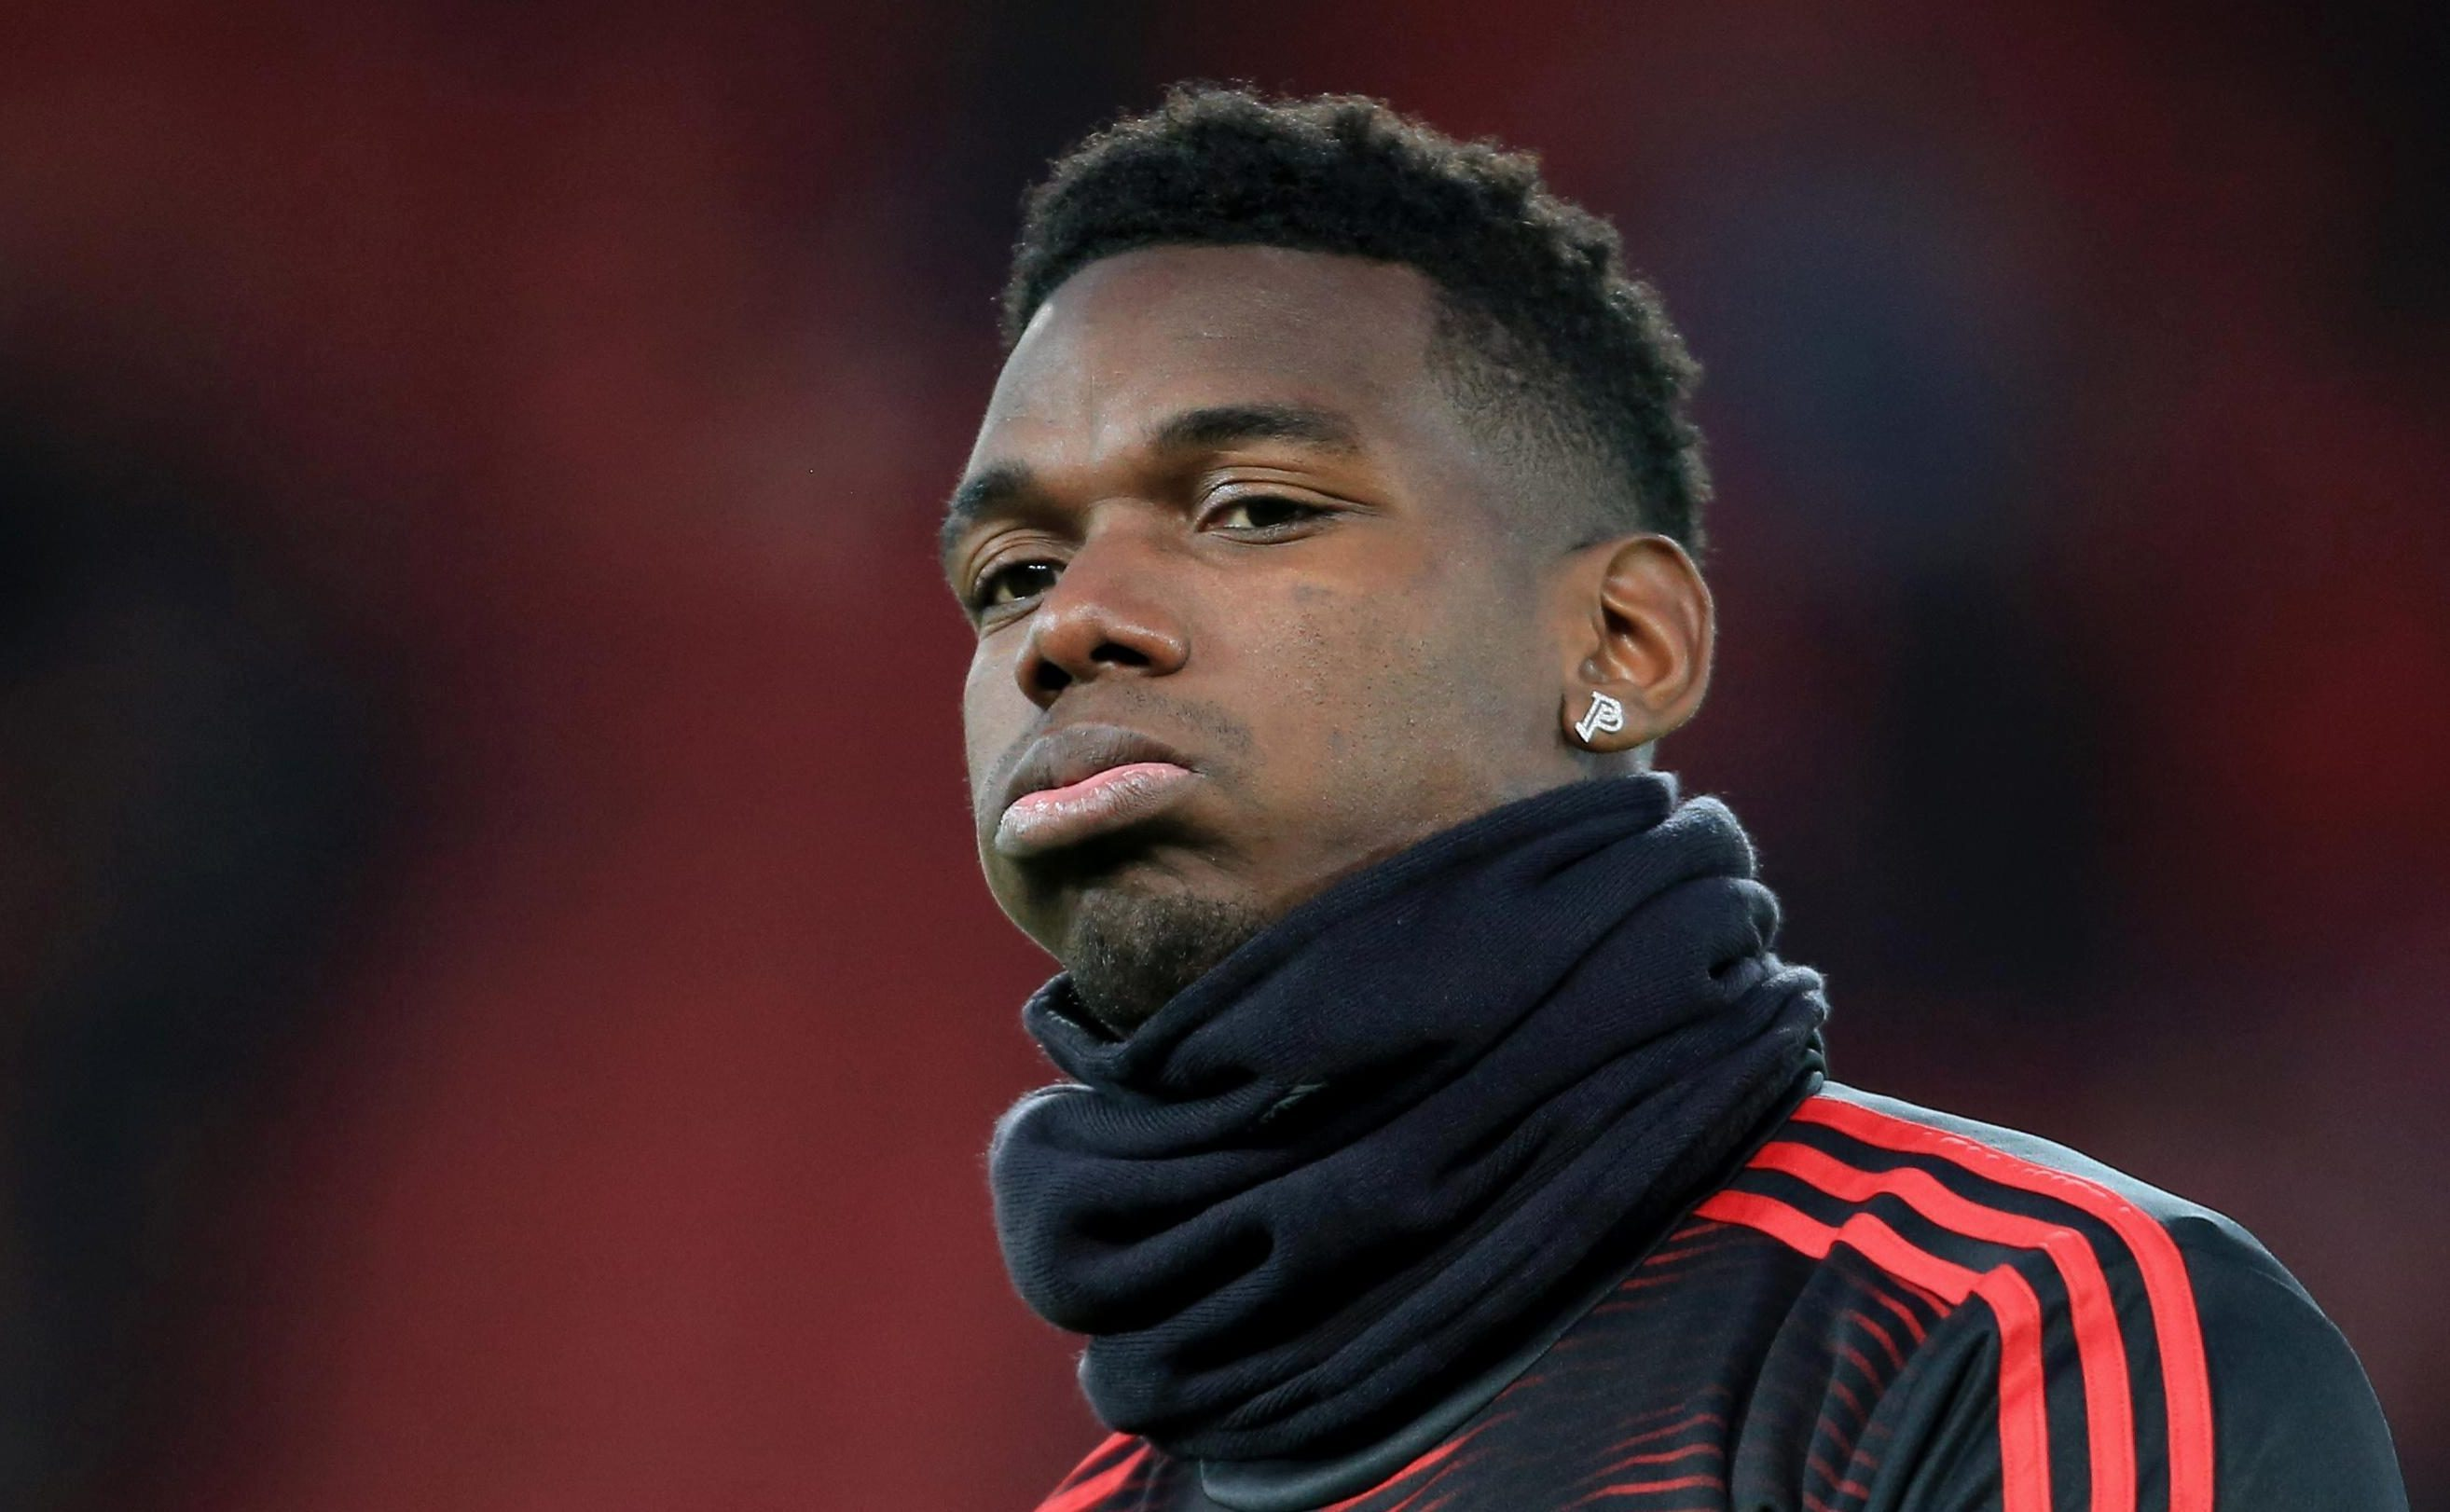 Paul Pogba's Liverpool axe 'was final straw' and Manchester United star wants Juventus transfer